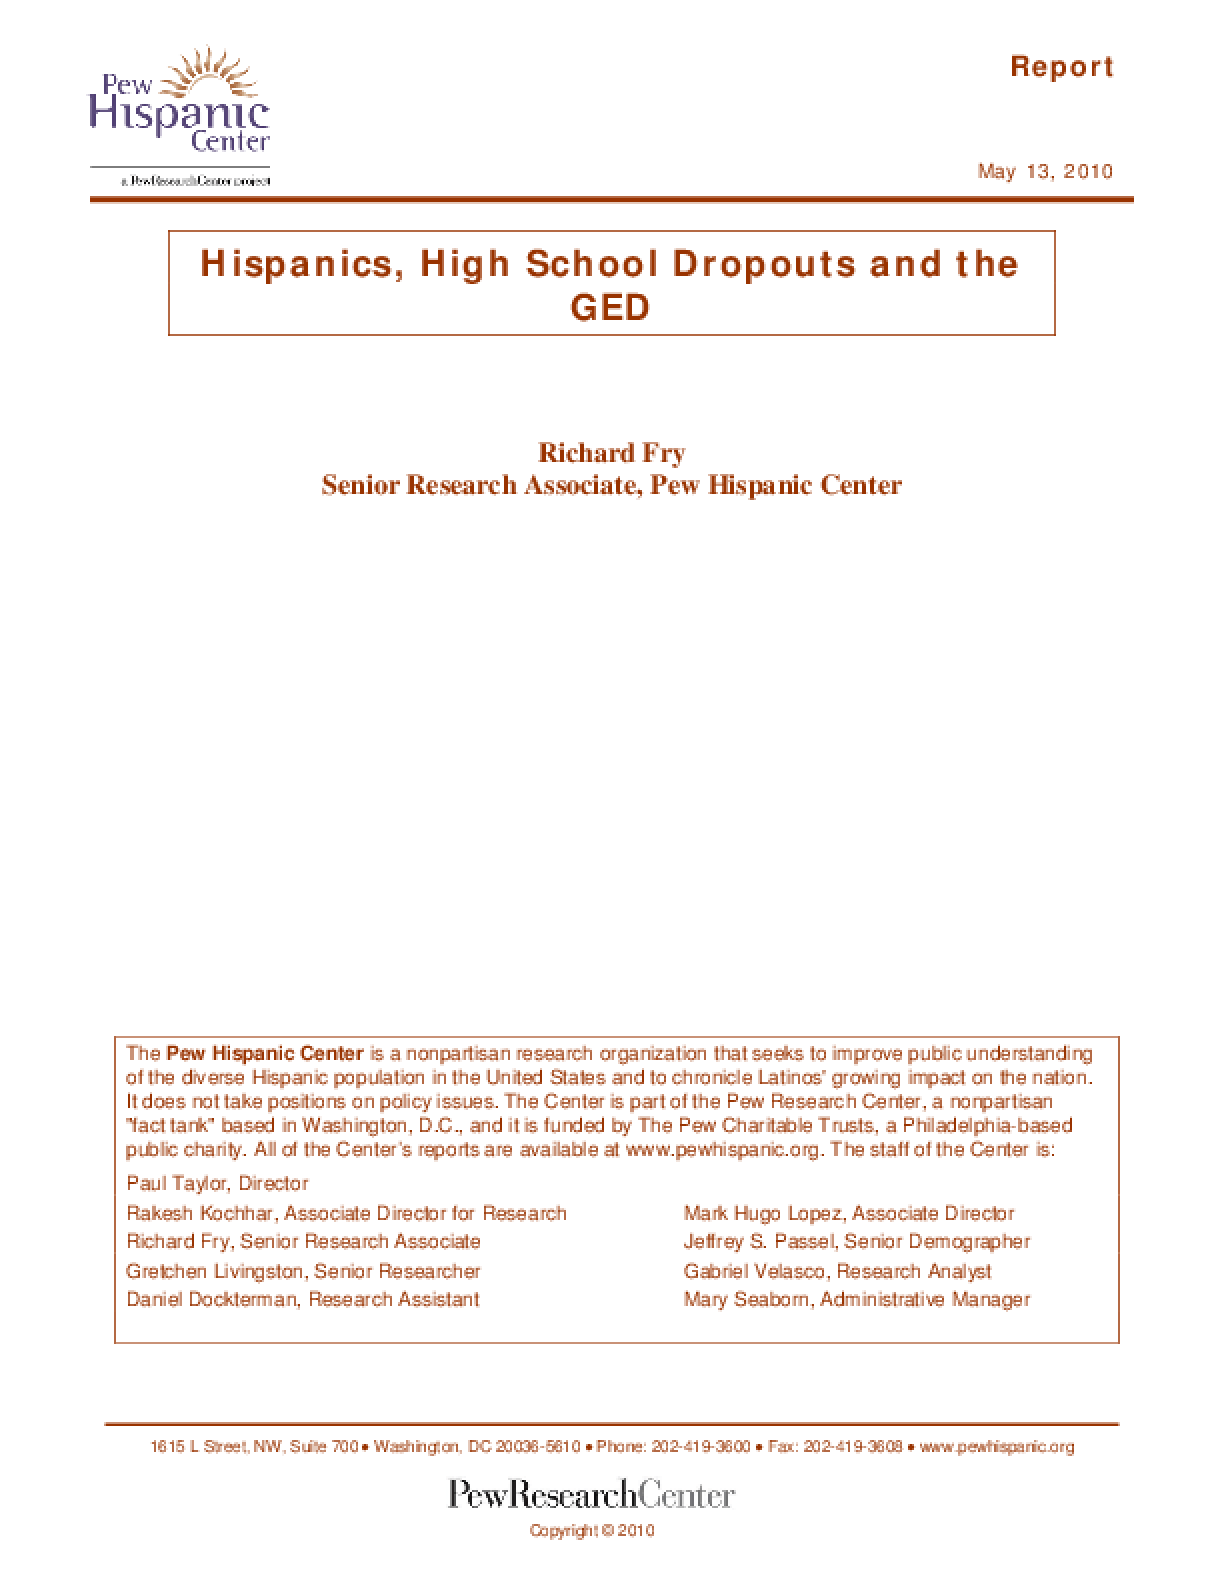 Hispanics, High School Dropouts and the GED